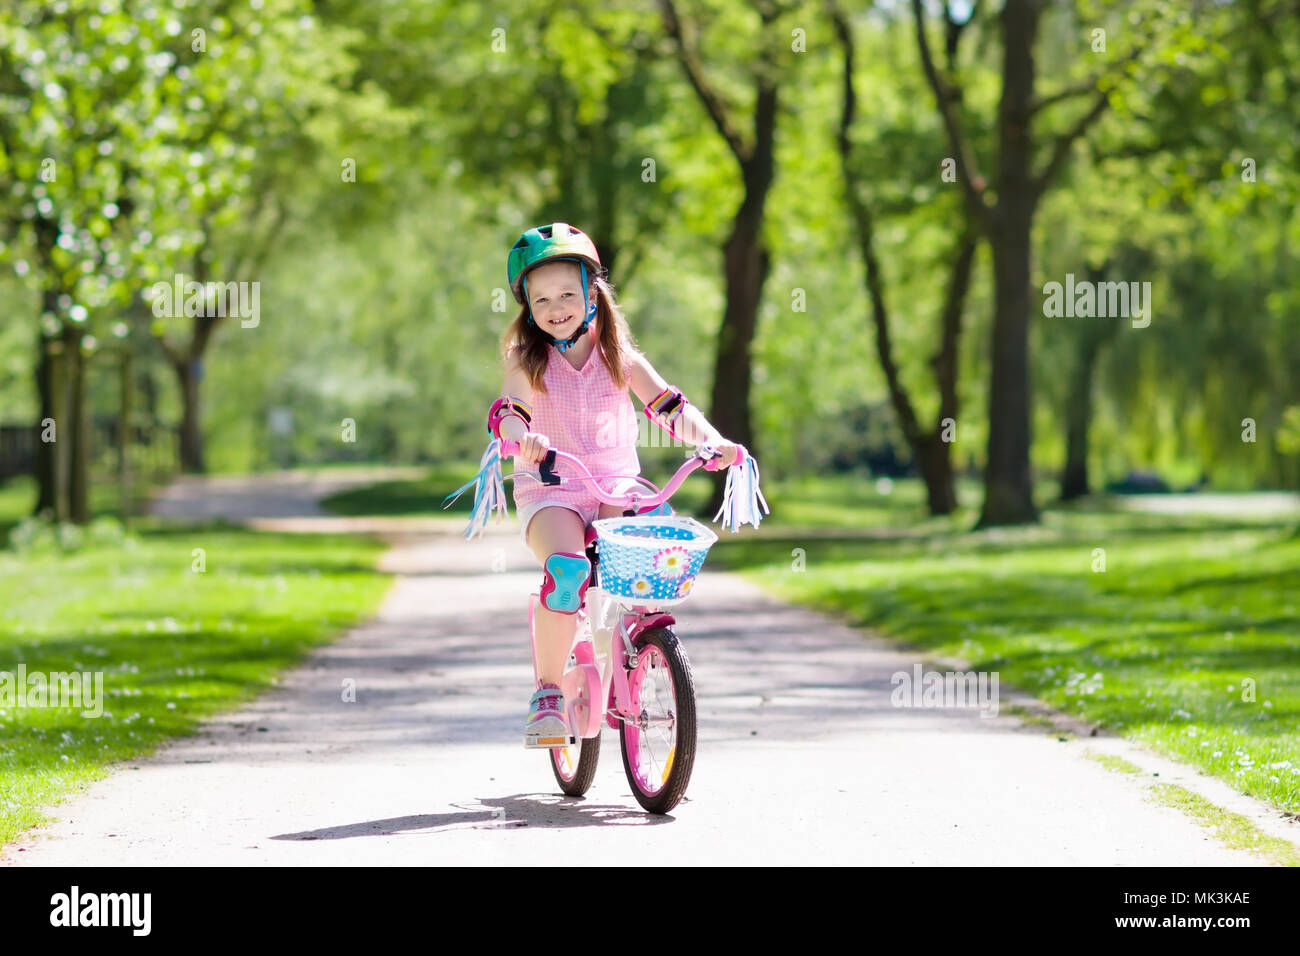 c1753393d566 Child riding a bike in summer park. Little girl learning to ride a bicycle  without training wheels. Kindergarten kid on two wheeler bike. Active outdo